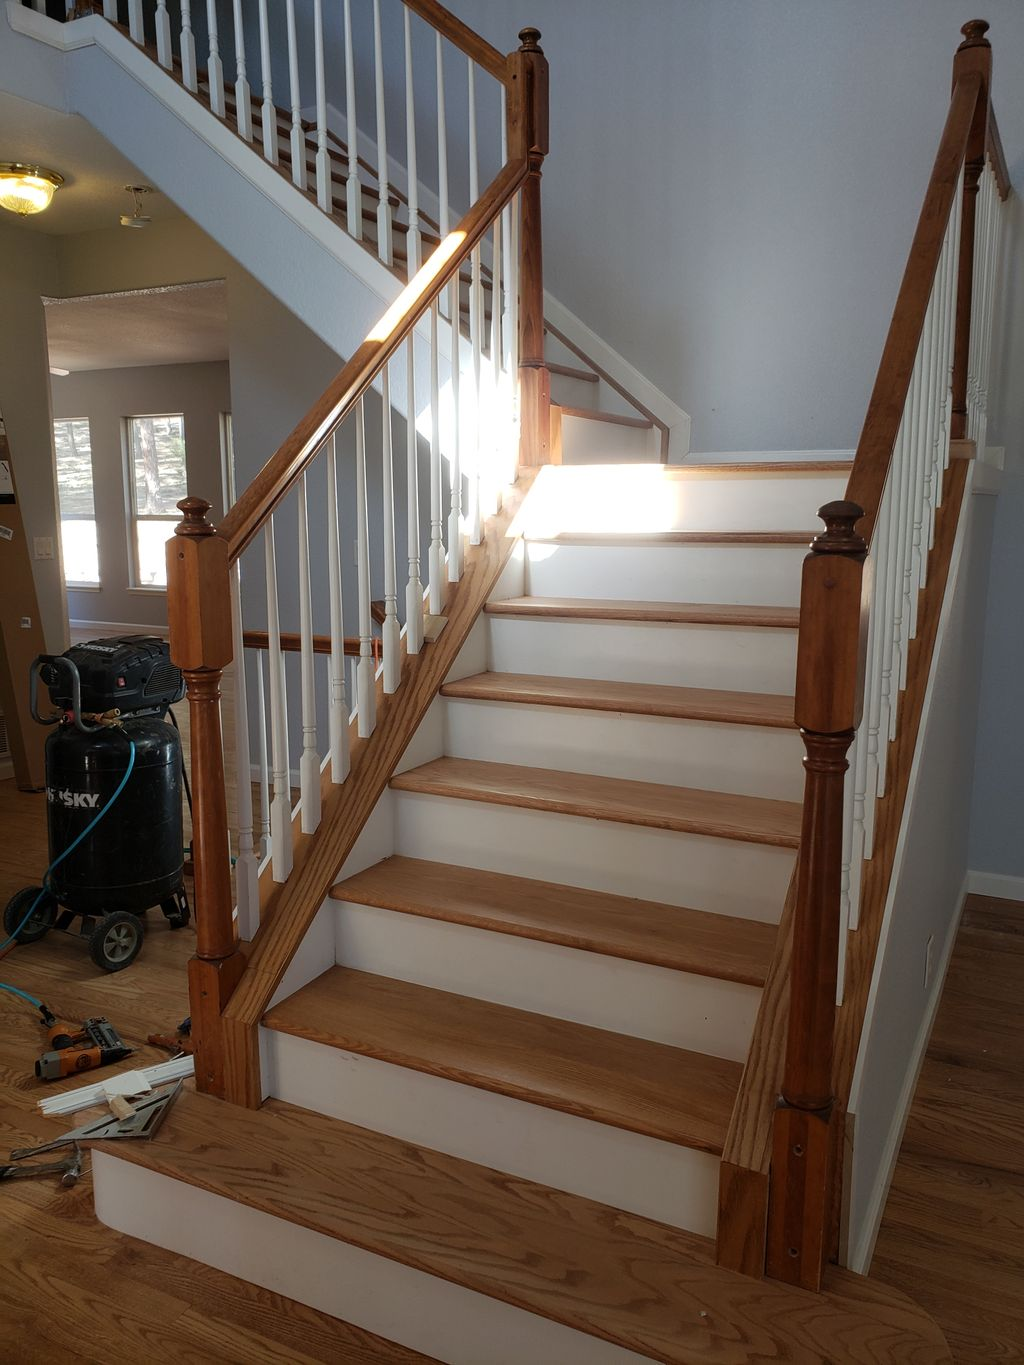 Staircase rebuild and hardwood floor refinishing